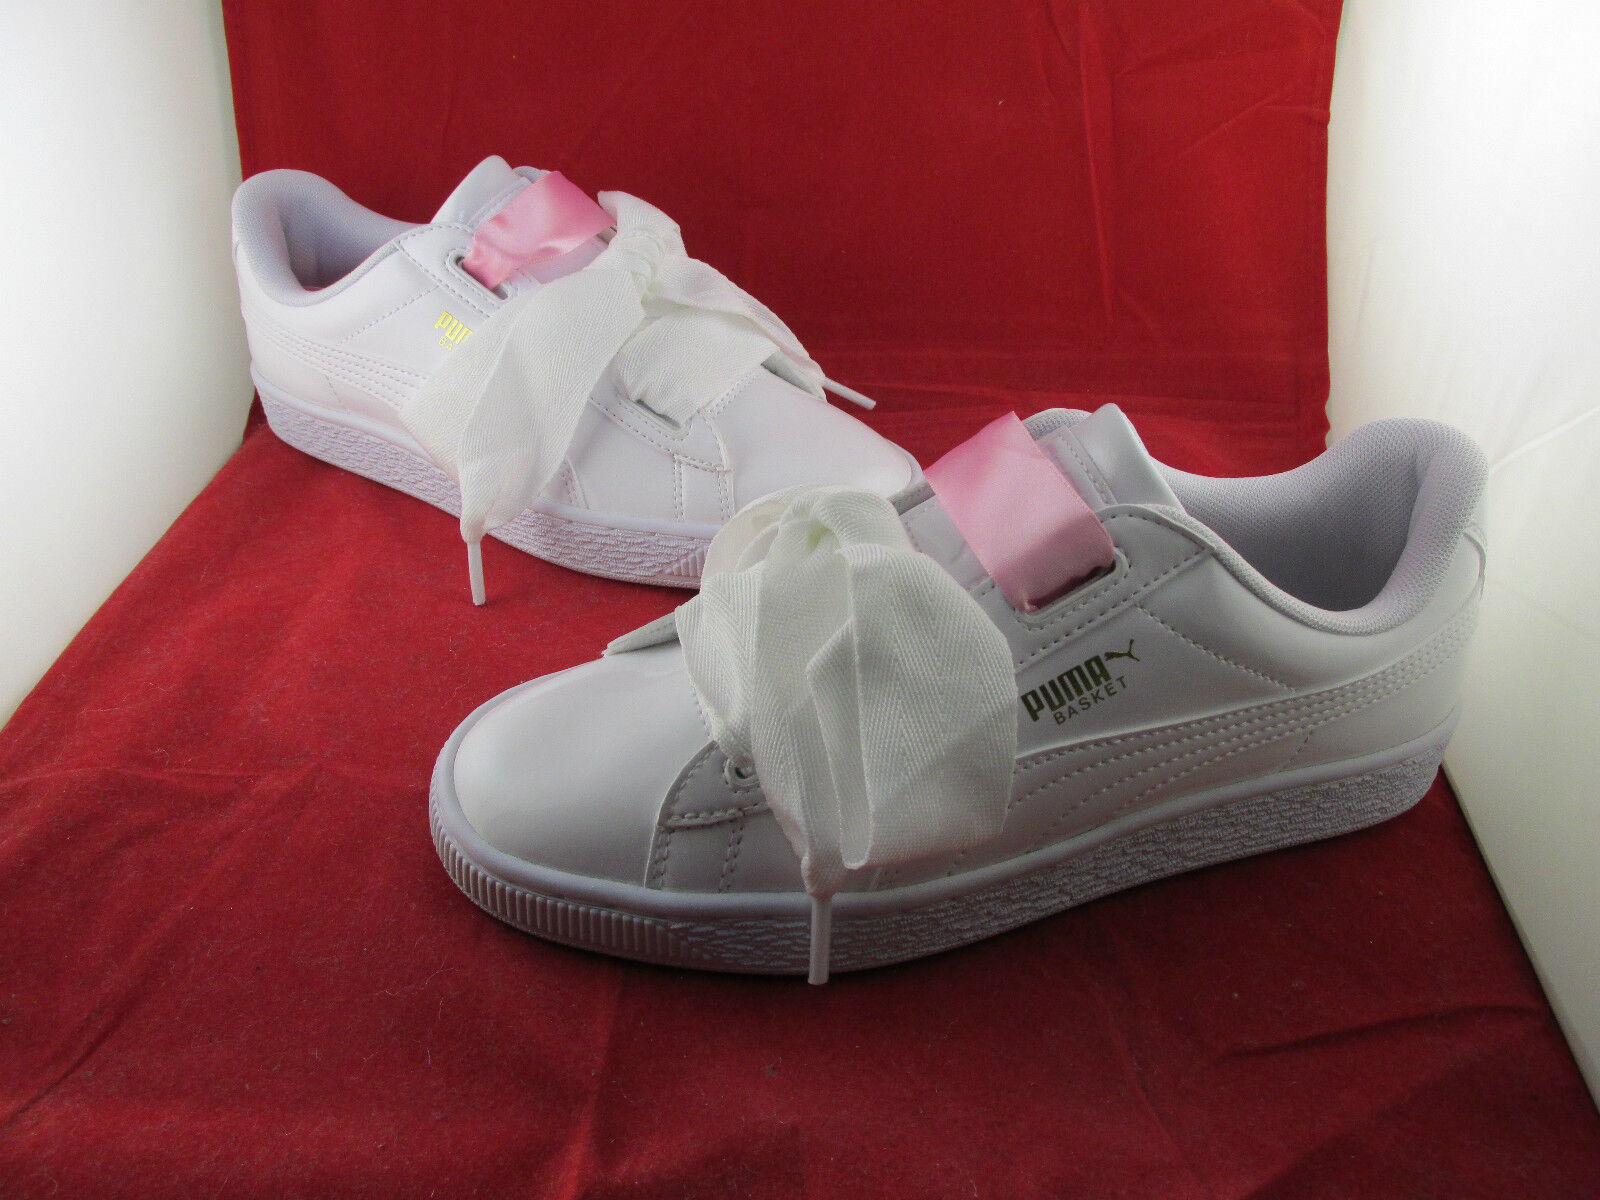 Puma Basket Heart Patent Jr White 3 4 5 6 All Sizes SportsLocker 364817-02